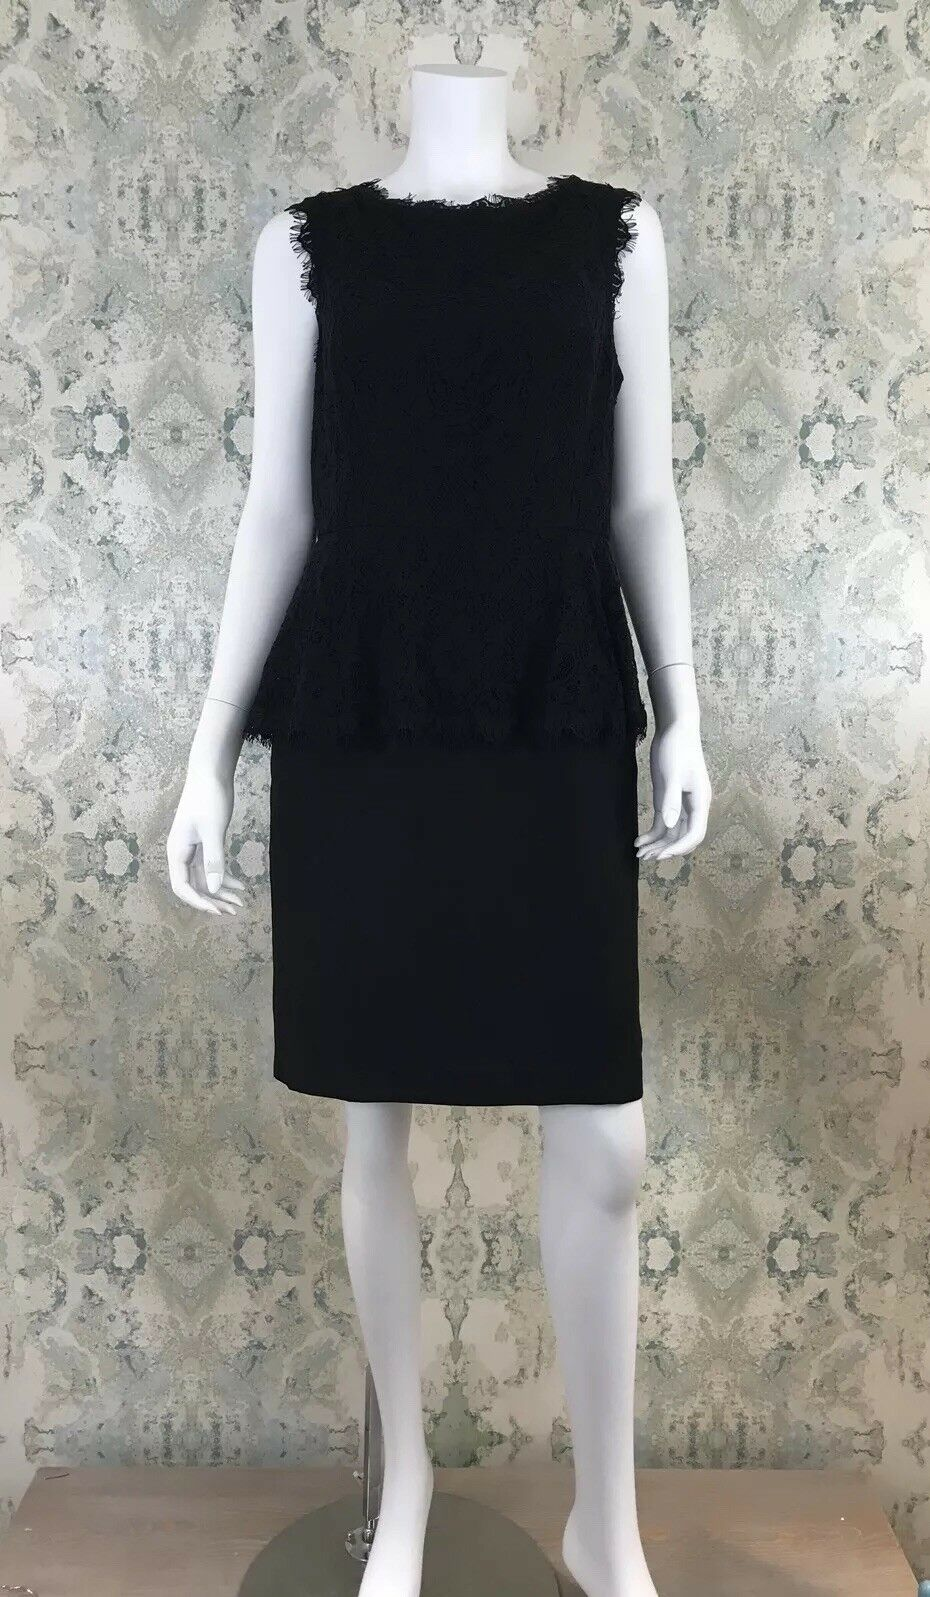 NWT Anthropologie Maeve schwarz Lace Peplum Vintage Inspirot Party Dress 12